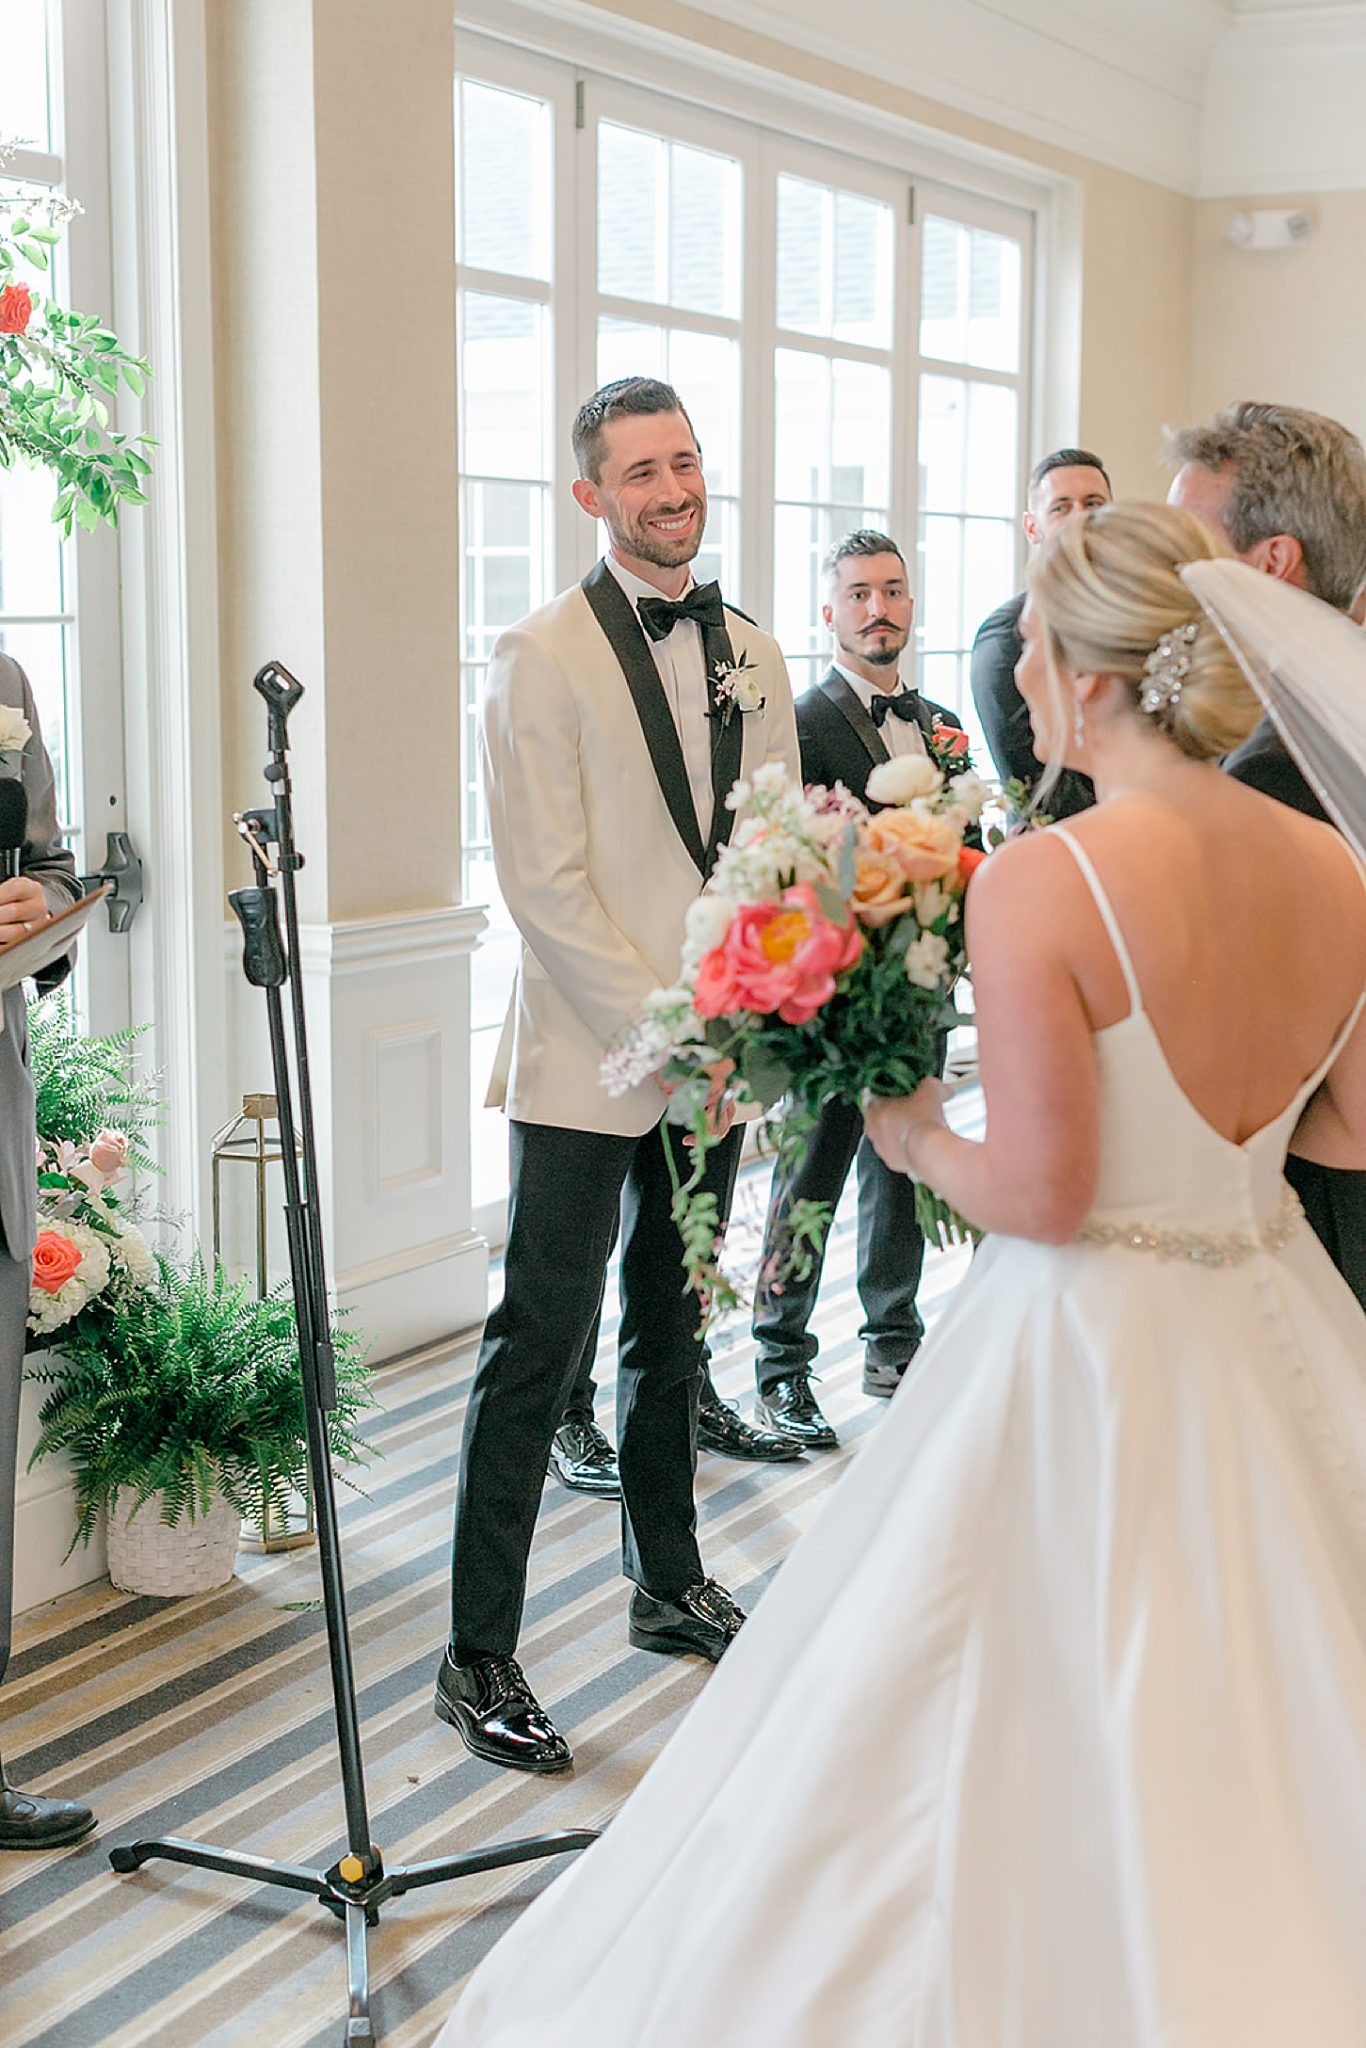 Linwood Country Club Summer Wedding Photography Studio by Magdalena Studios Jenn Kyle 0027 scaled